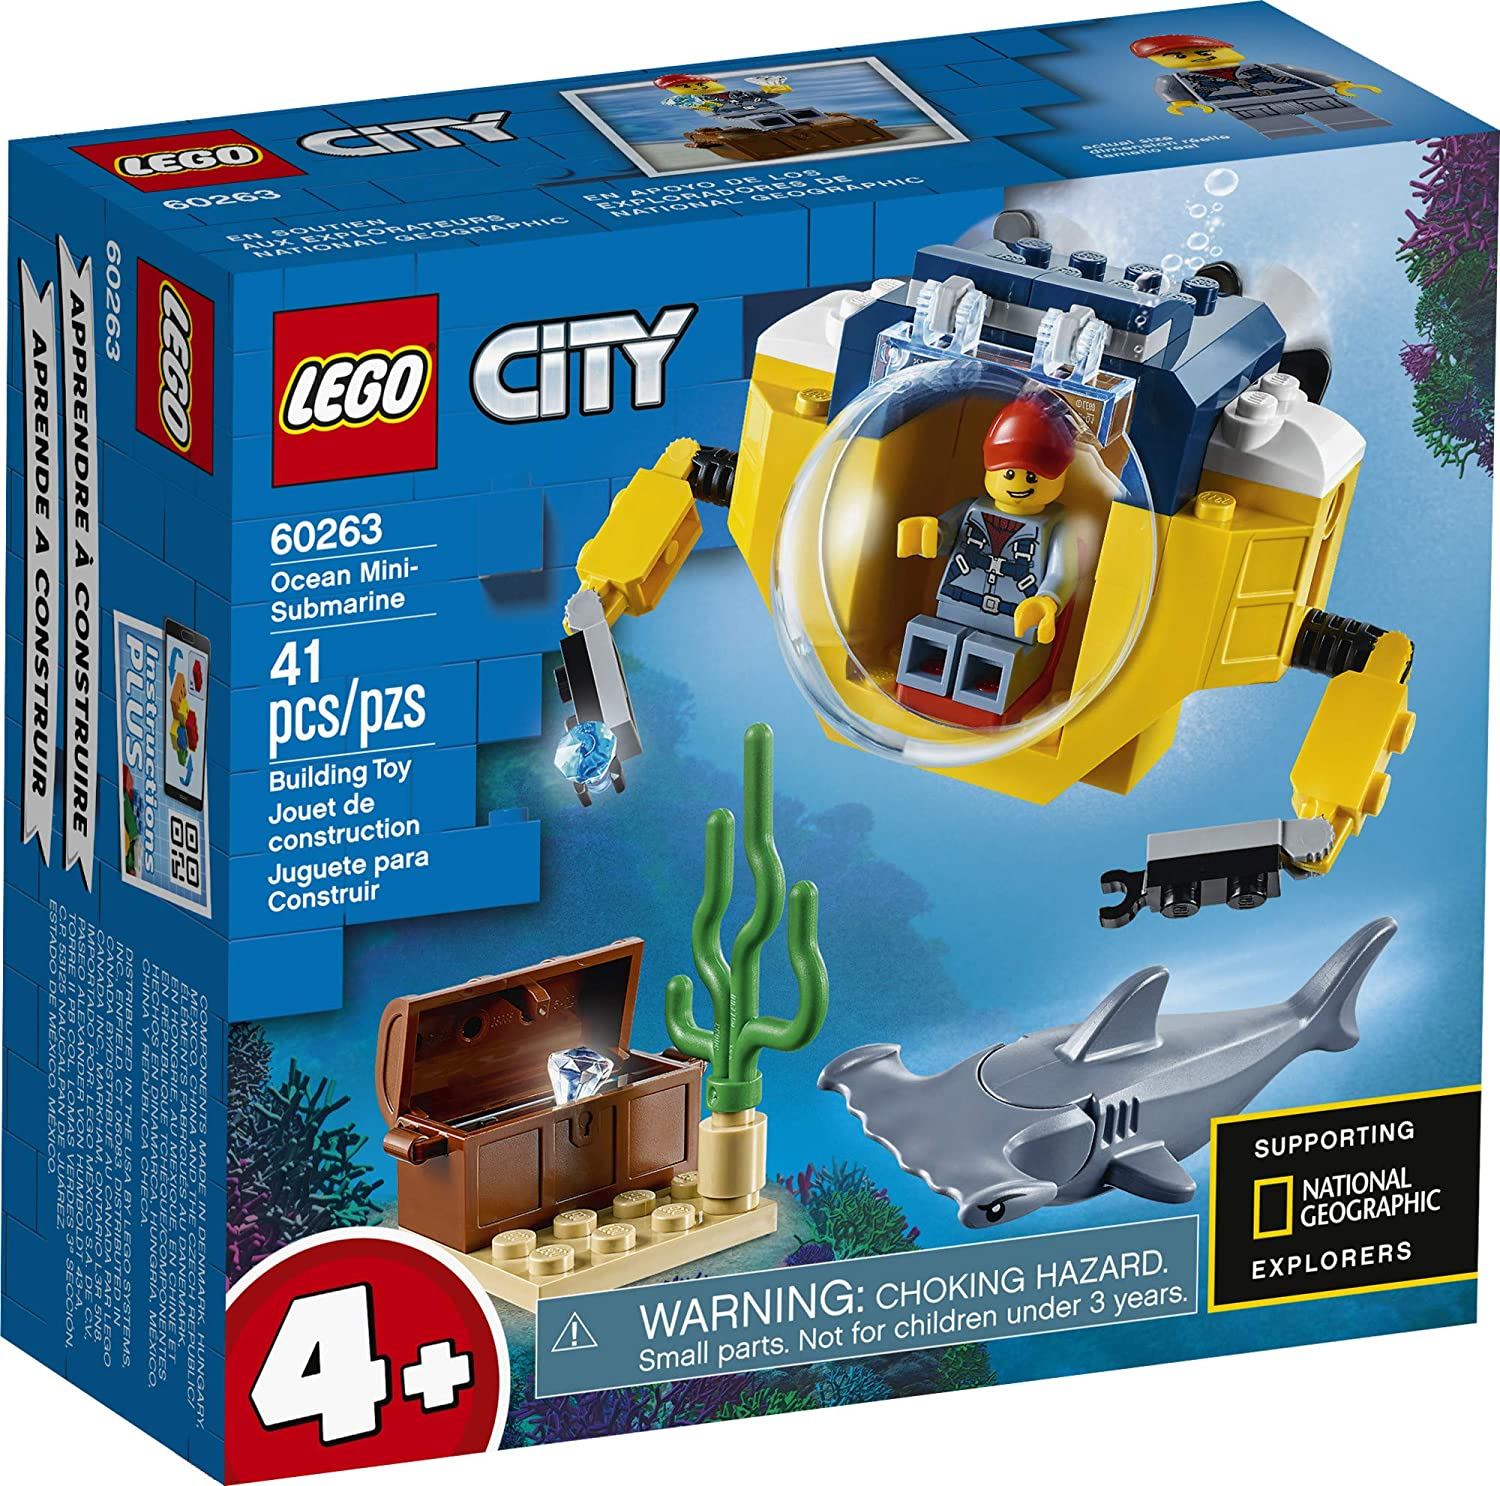 LEGO CITY - Mini-submarino Oceânico 60263